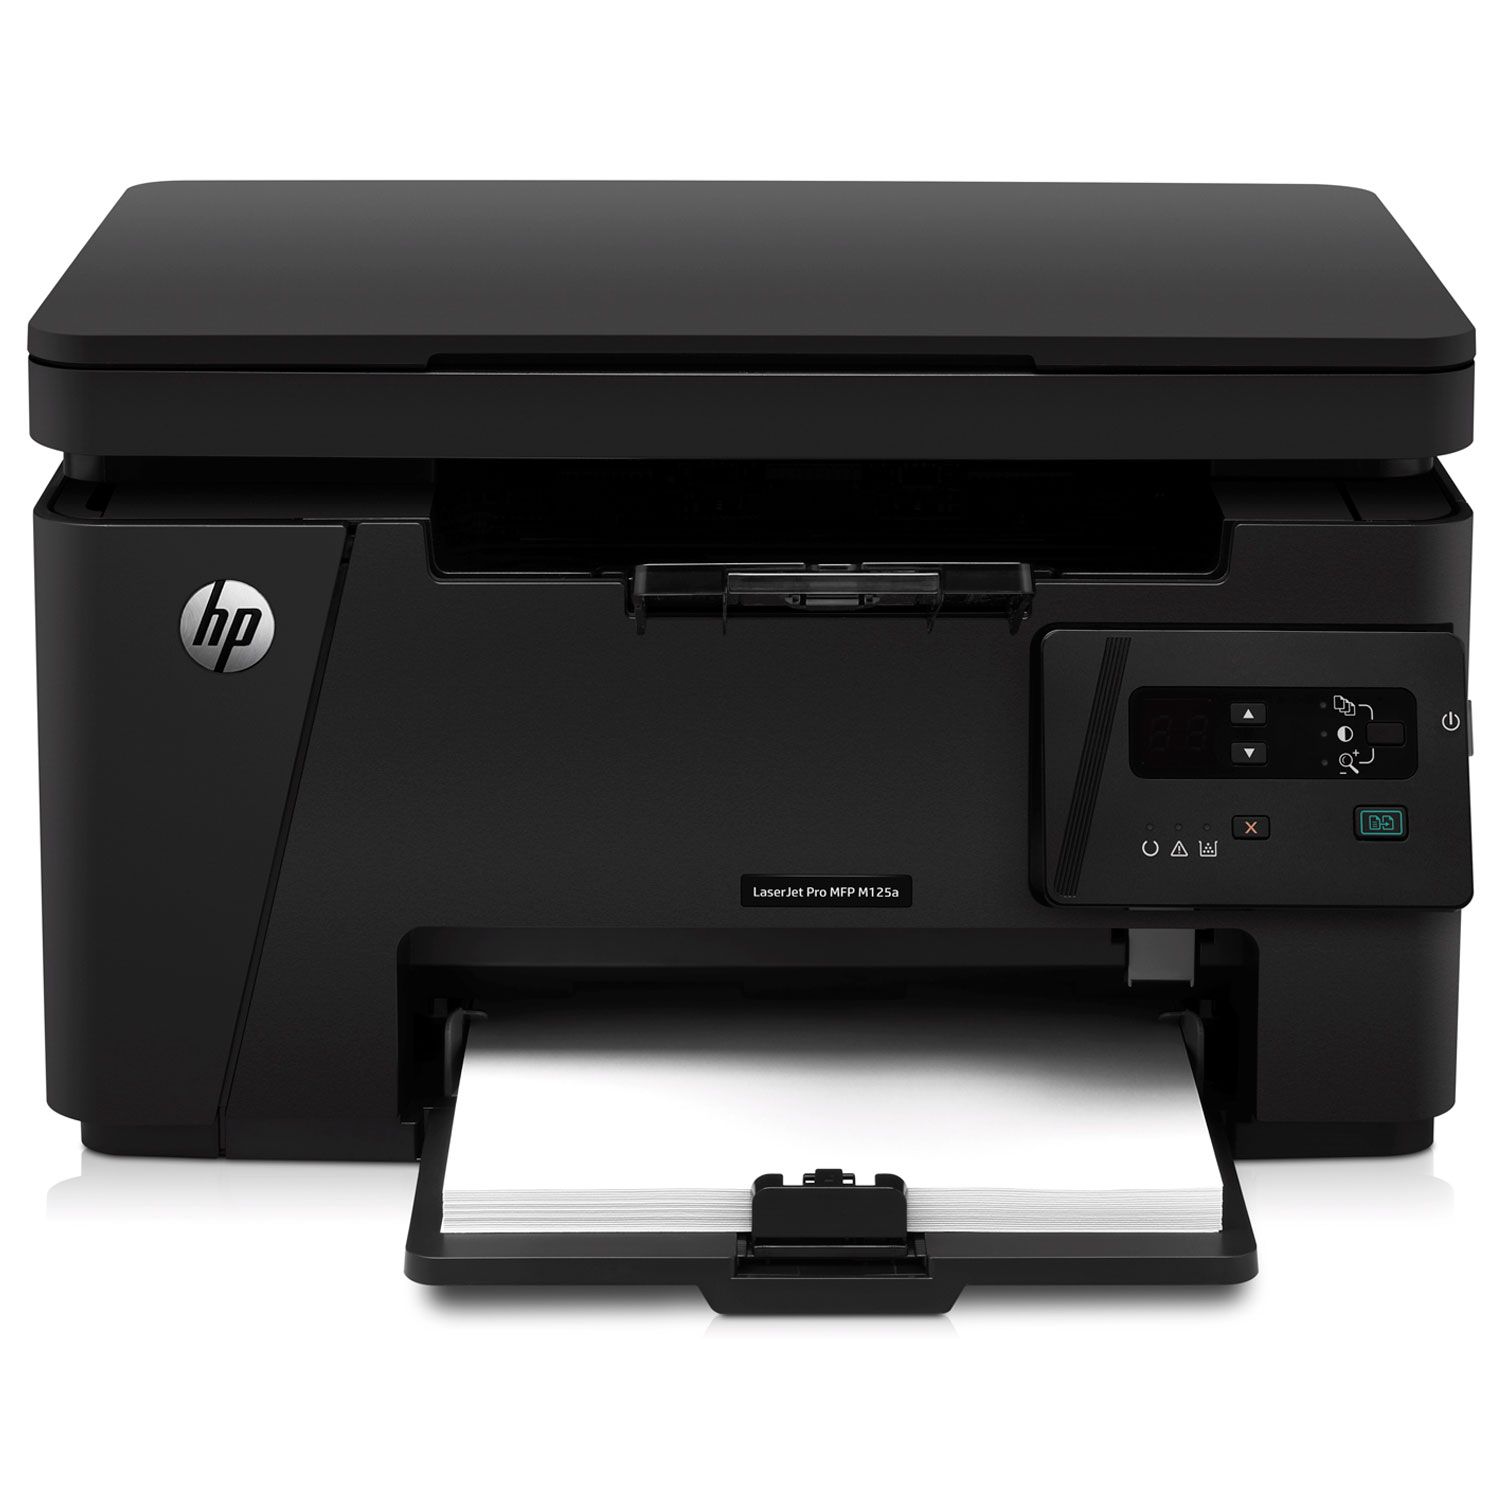 hp laserjet pro mfp m125a imprimante multifonction hp sur ldlc. Black Bedroom Furniture Sets. Home Design Ideas